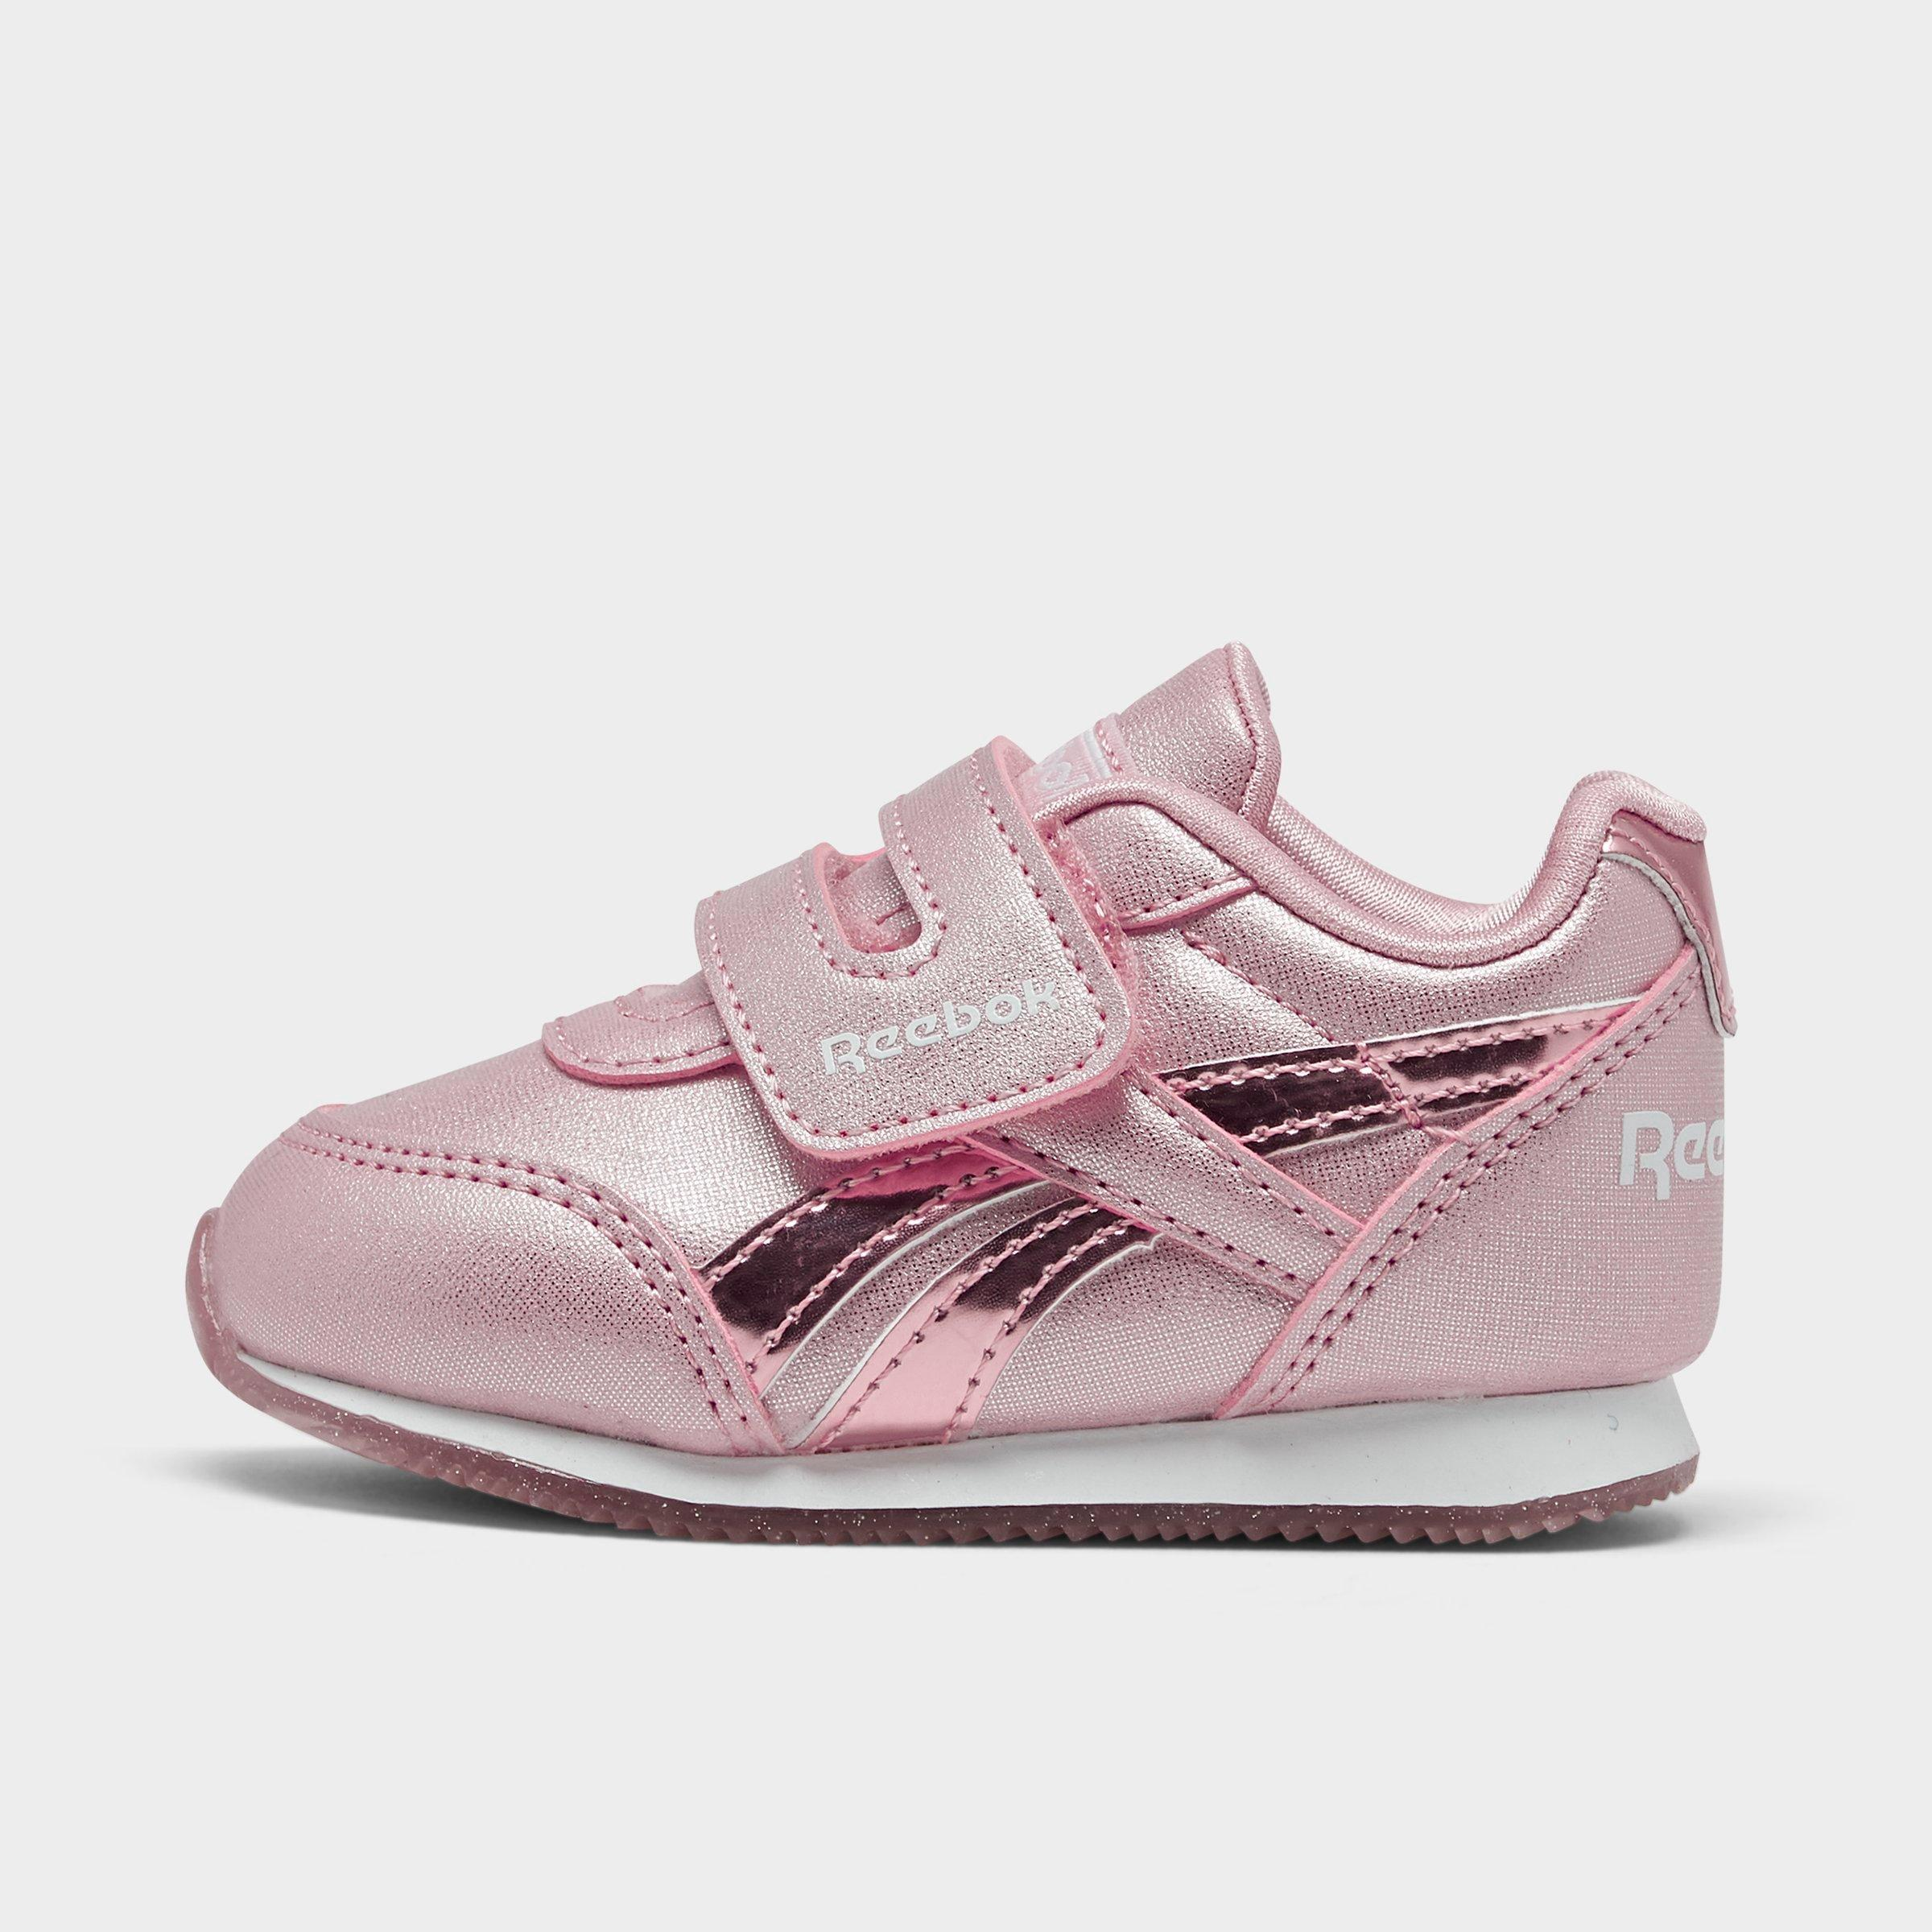 White//Pink//Cool Bree Leather Hi-Top Shoes REEBOK V63067 FREESTYLE II Girl/'s M